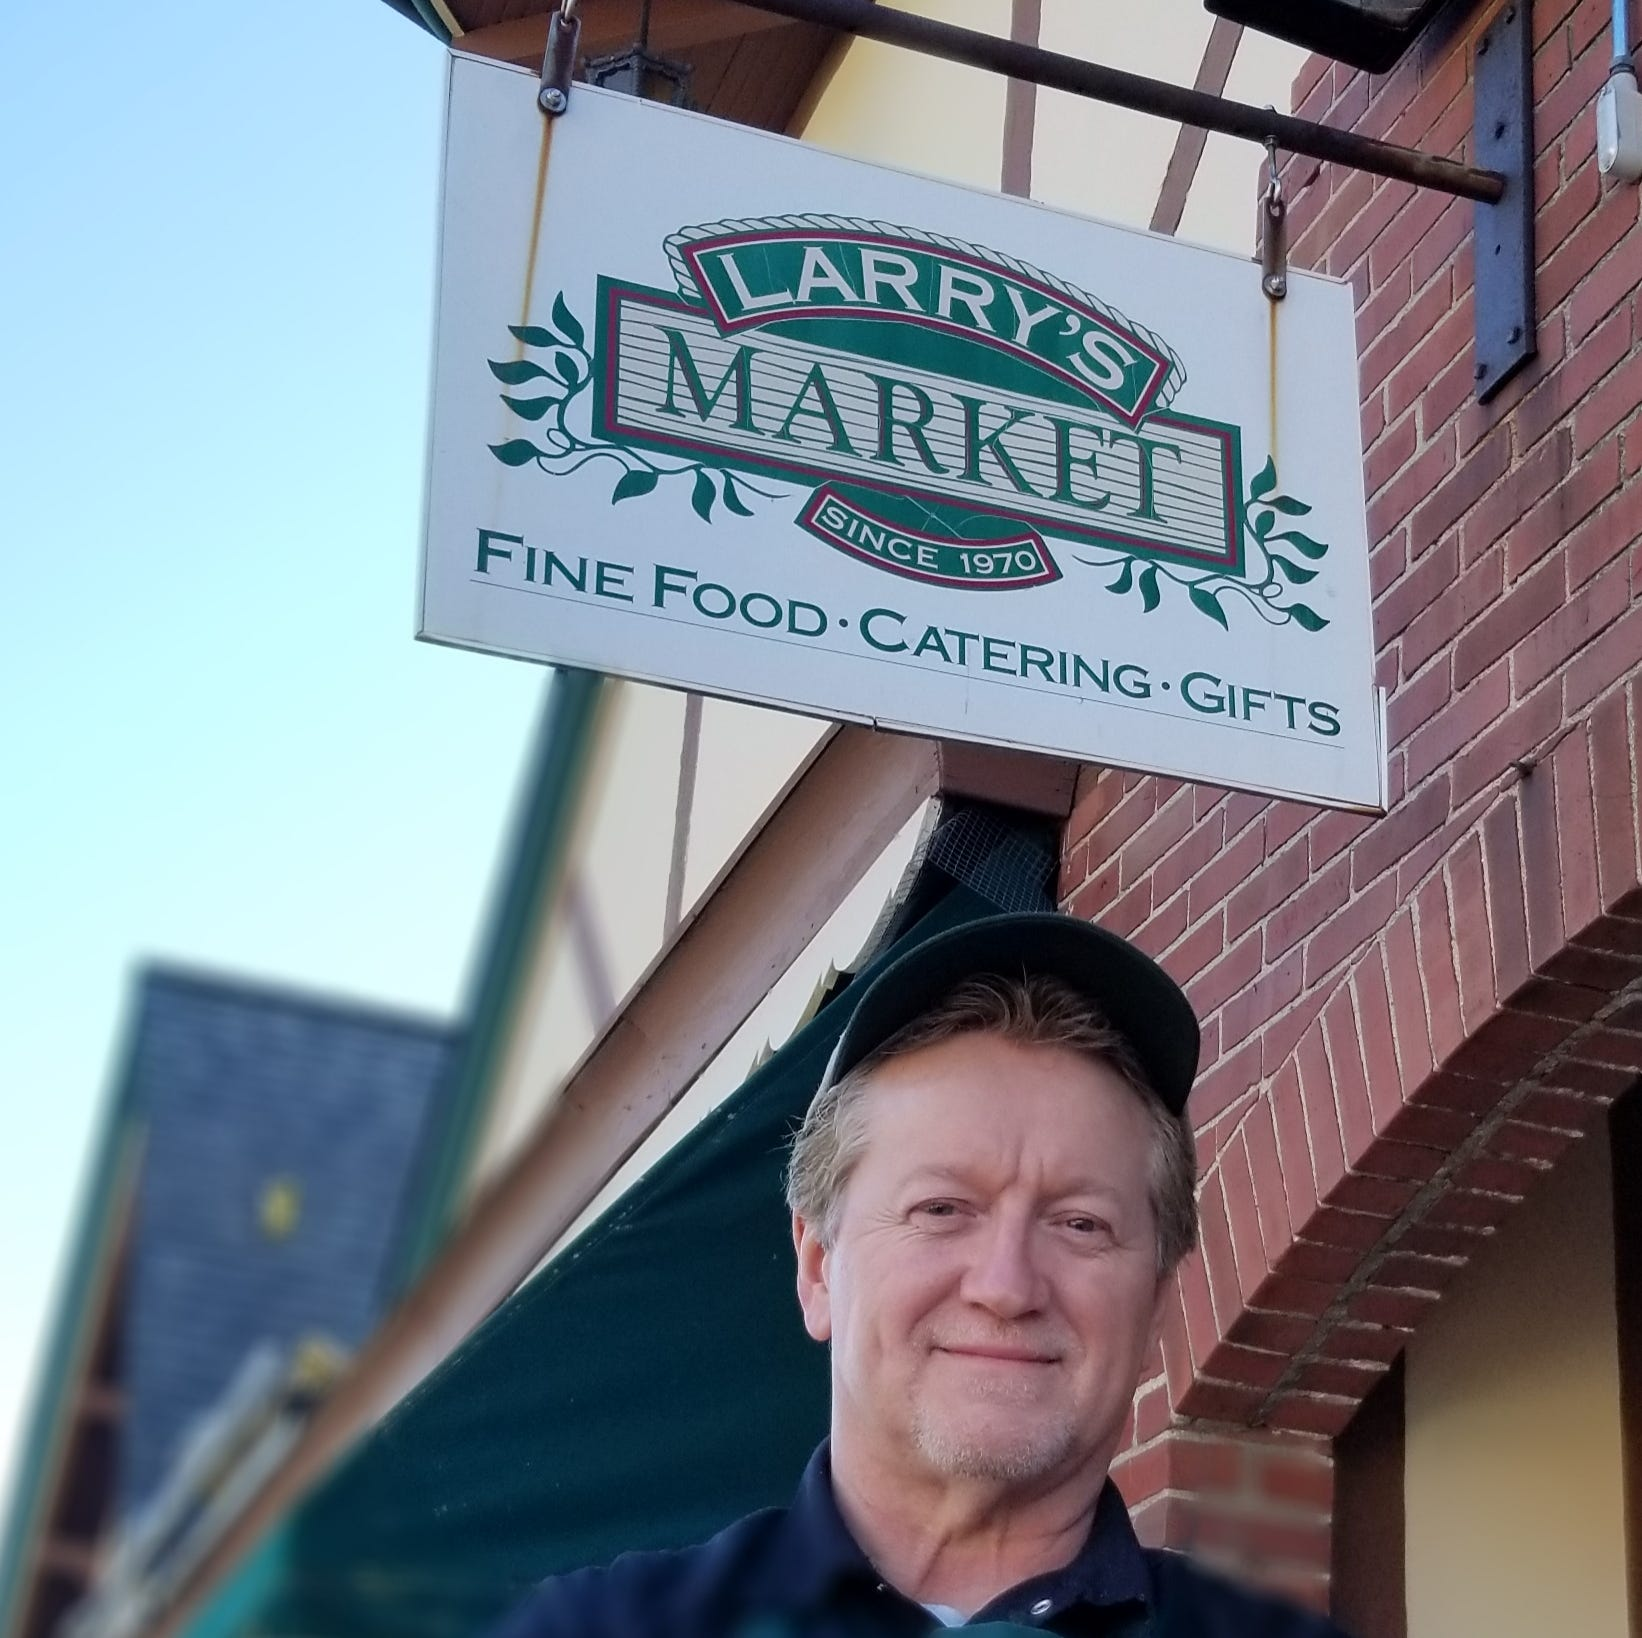 Larry's Market in Brown Deer has a new chef, this one named Cook